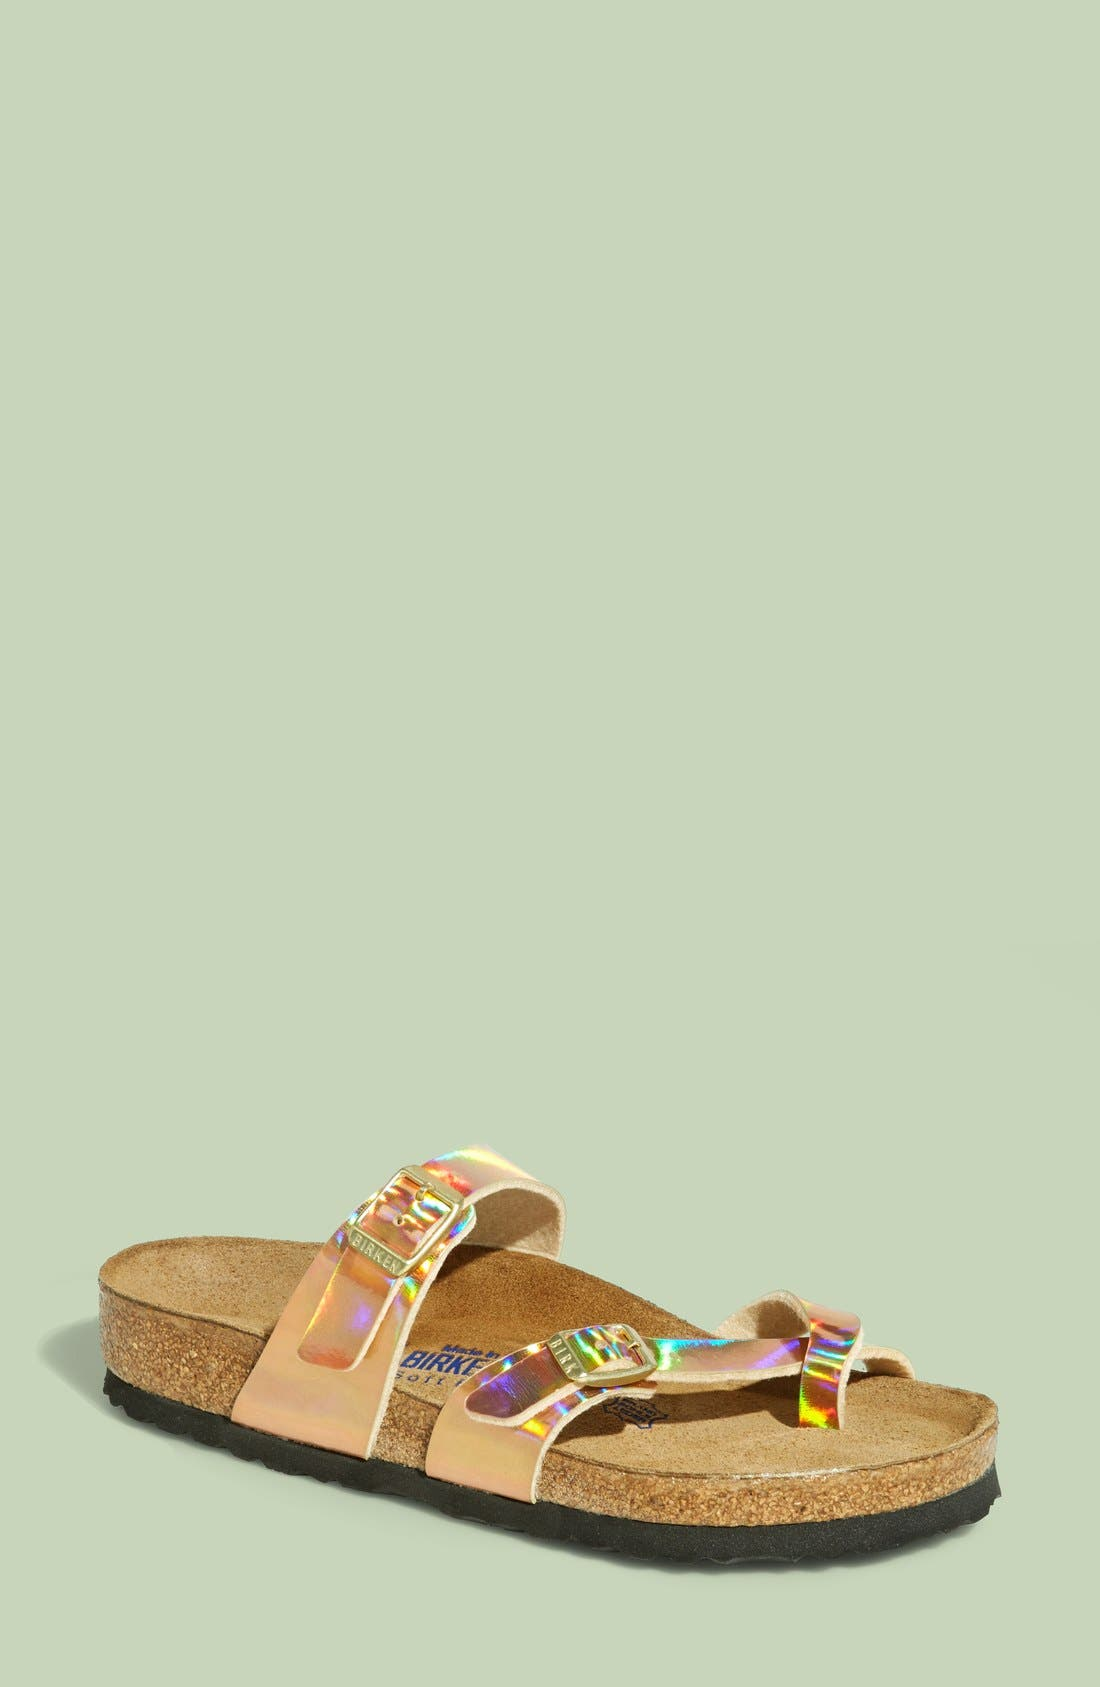 BIRKENSTOCK 'Mayari' Birko-Flor<sup>™</sup> Soft Footbed Sandal, Main, color, 750